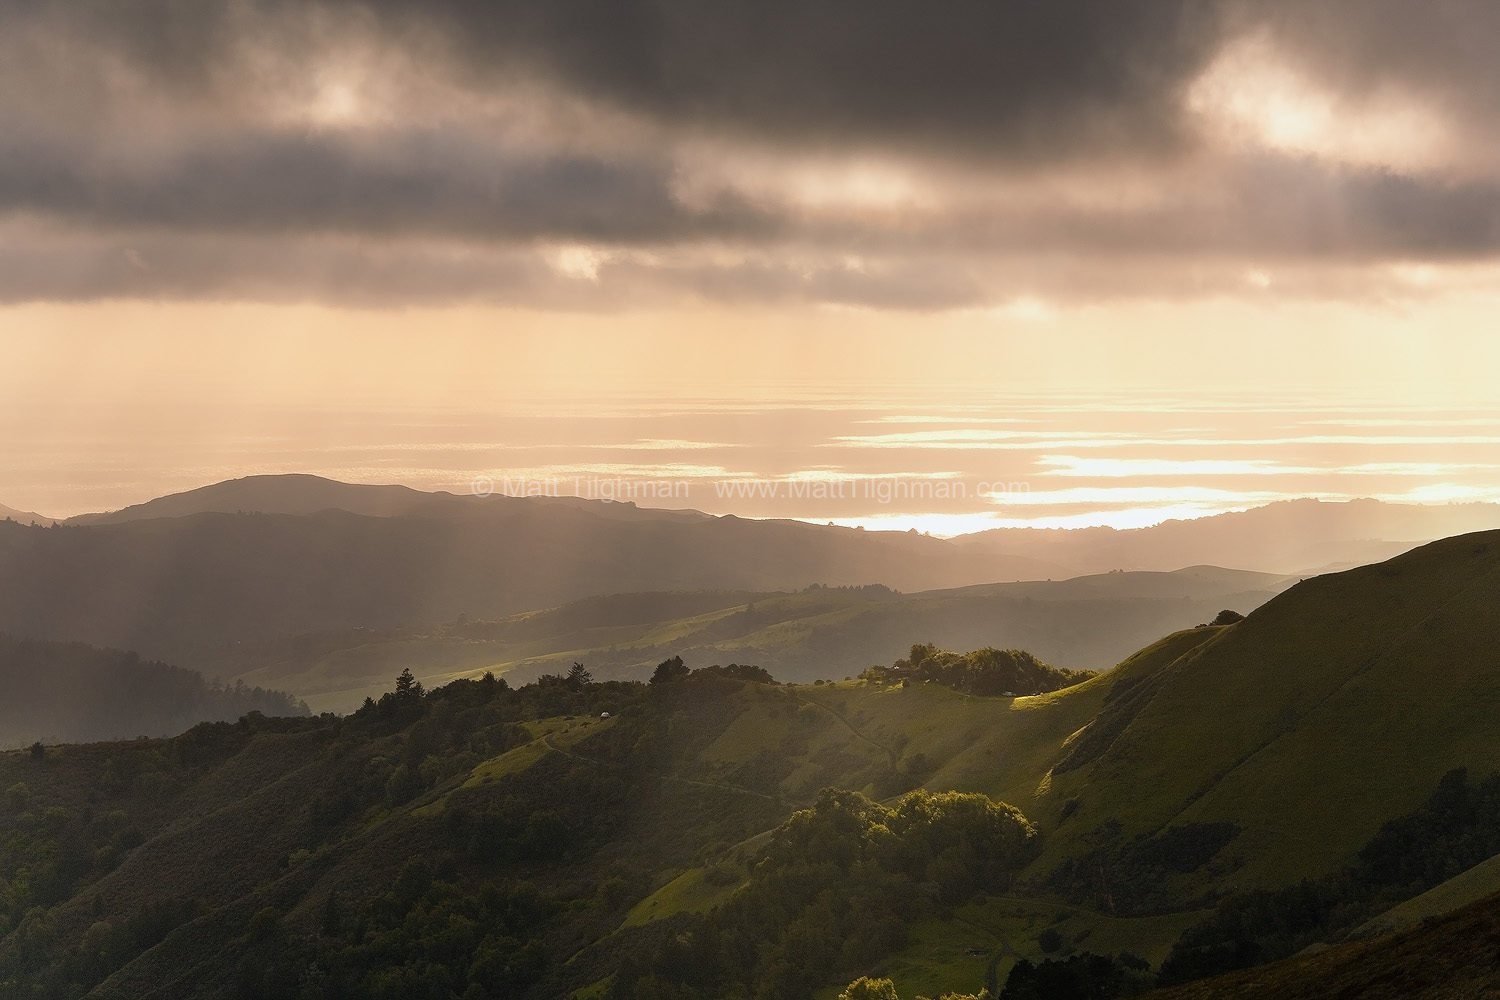 Fine art stock photograph from Russian Ridge Open Space, California. From up in the Santa Cruz Mountains, the Pacific Ocean looks like an archipelago of sunshine.